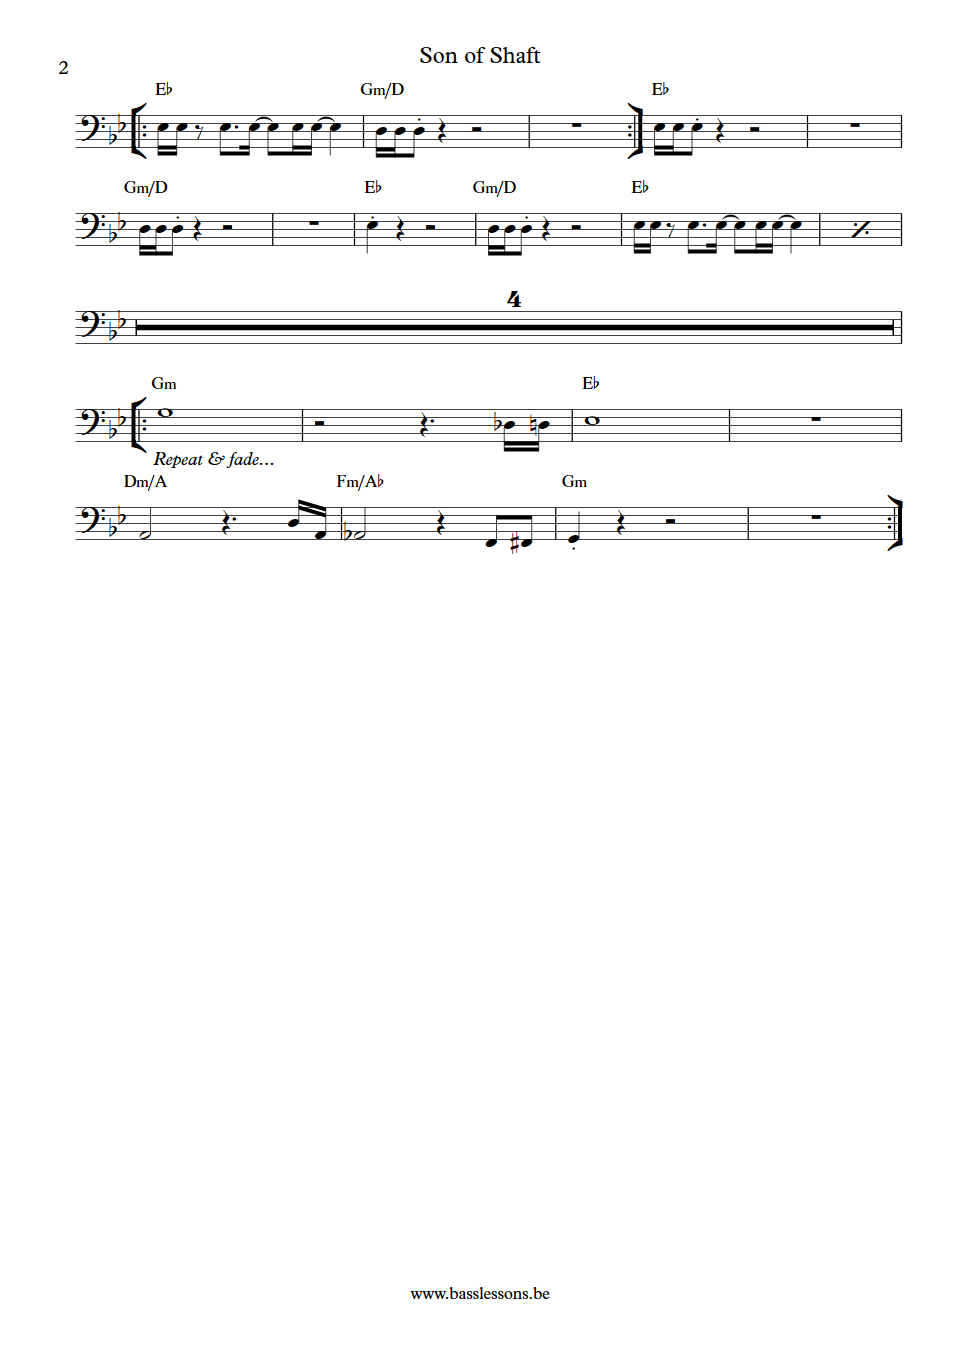 the bar kays son of shaft bass transcription part 2